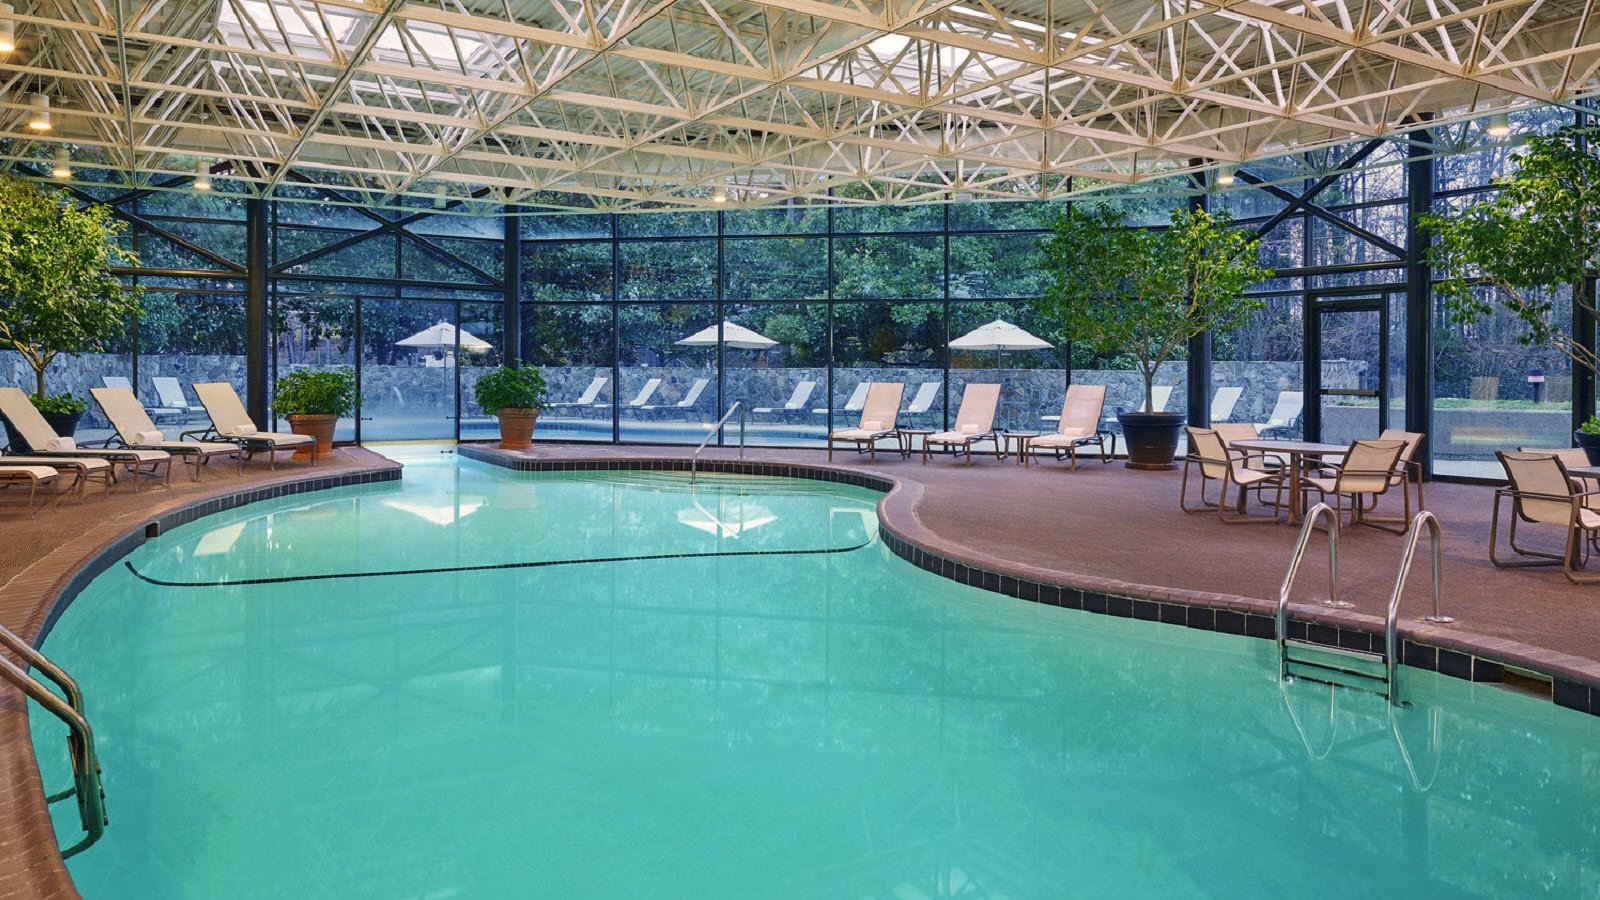 https://www.hotelsbyday.com/_data/default-hotel_image/0/1156/the-westin-atlanta-airport-interior-pool.jpg